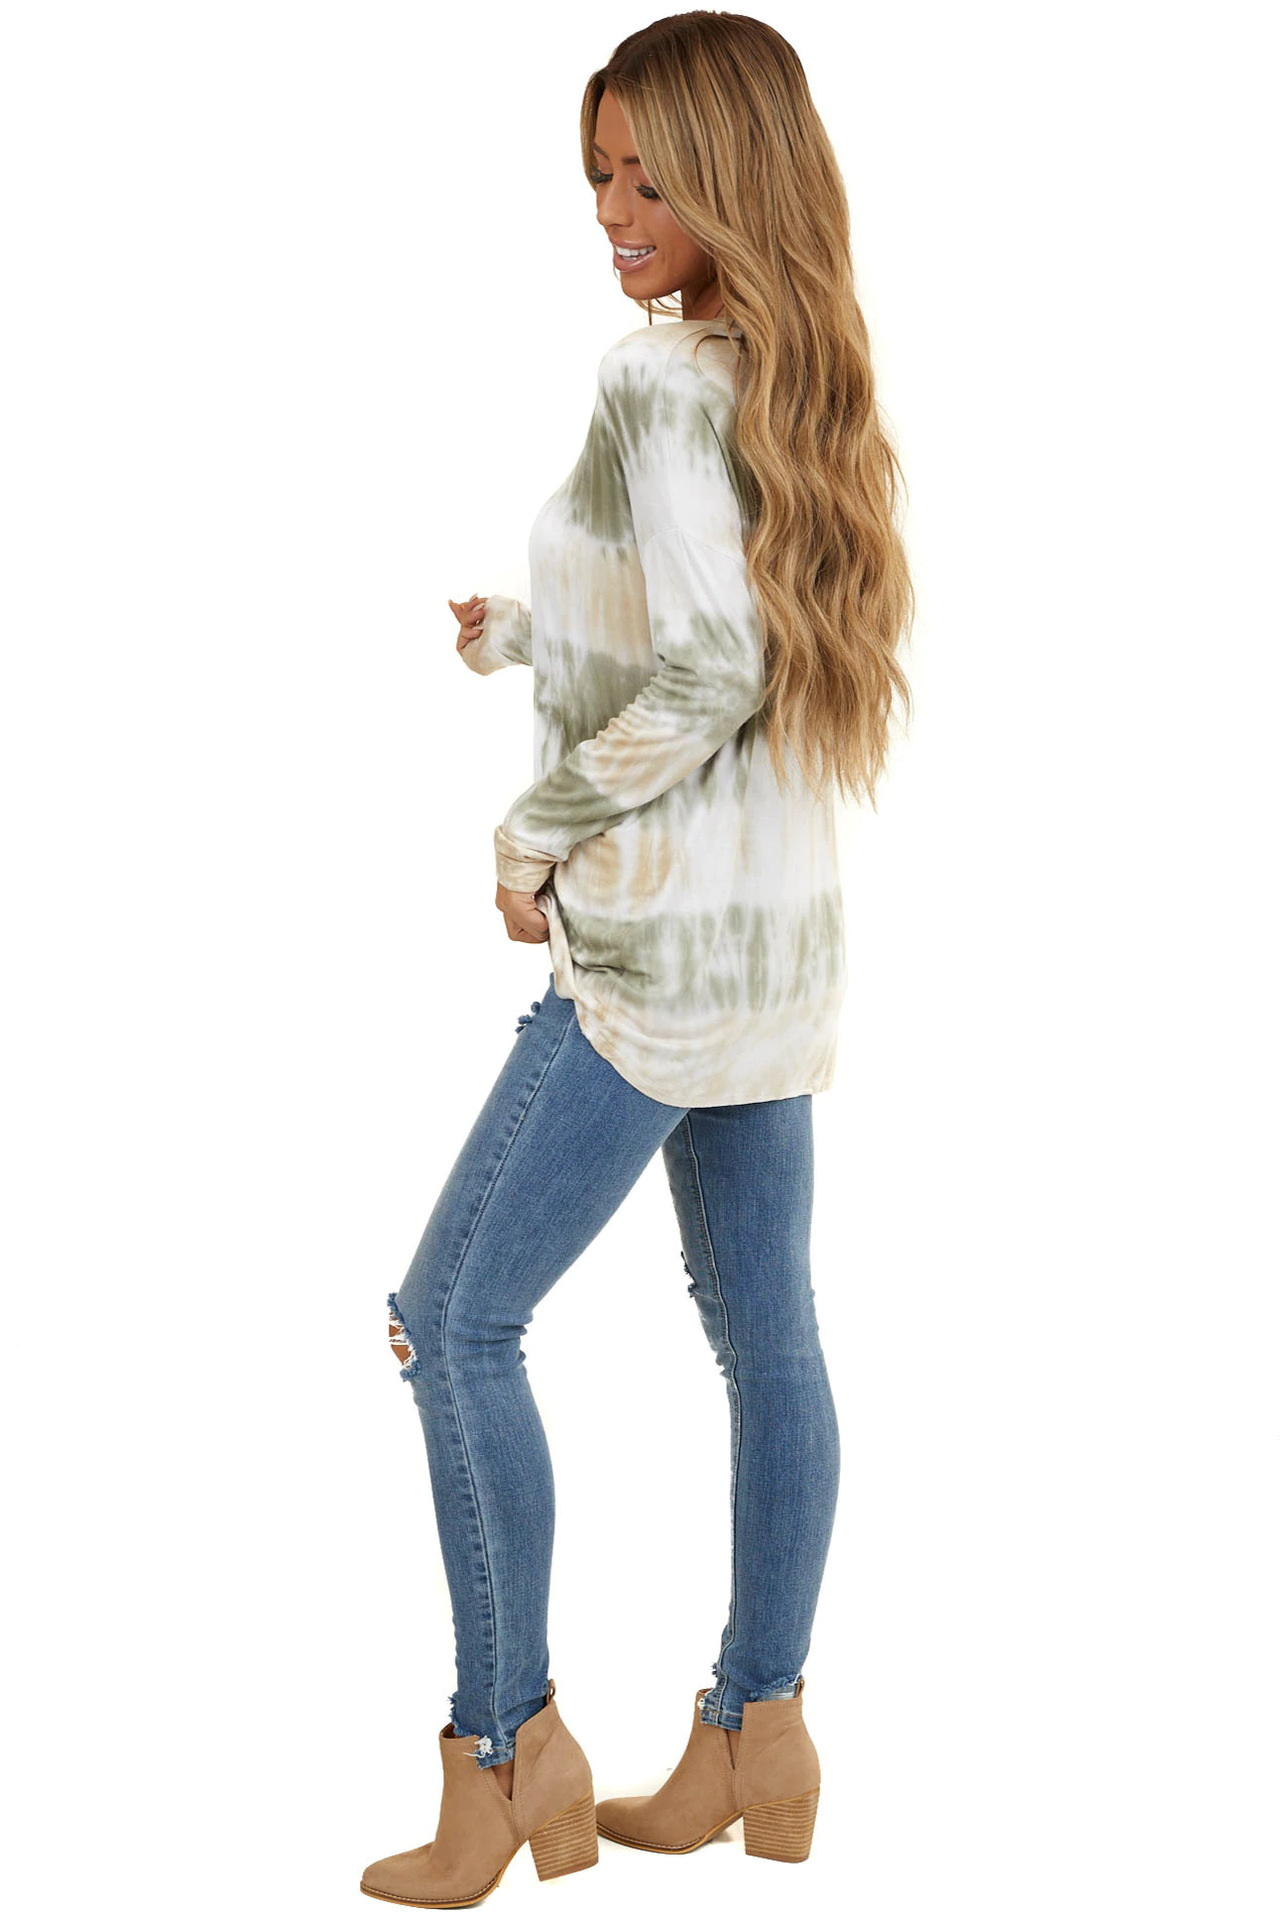 women's autumn new tie-dye printing long-sleeved round neck top T-shirt NSYF823